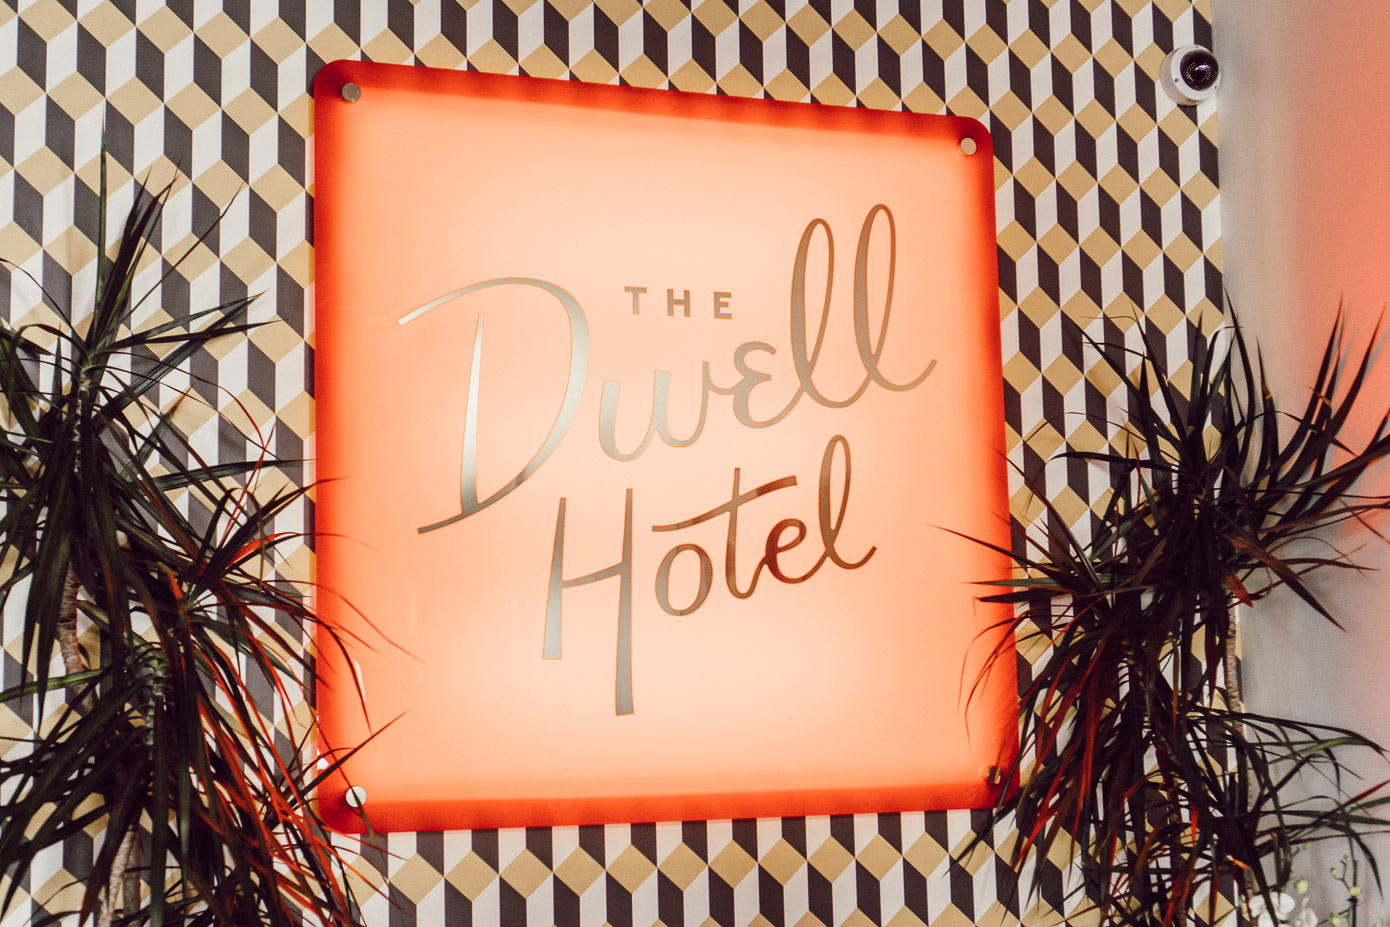 The Dwell Hotel Chattanooga Tennessee | Chattanooga Travel Guide Featured on Louella Reese